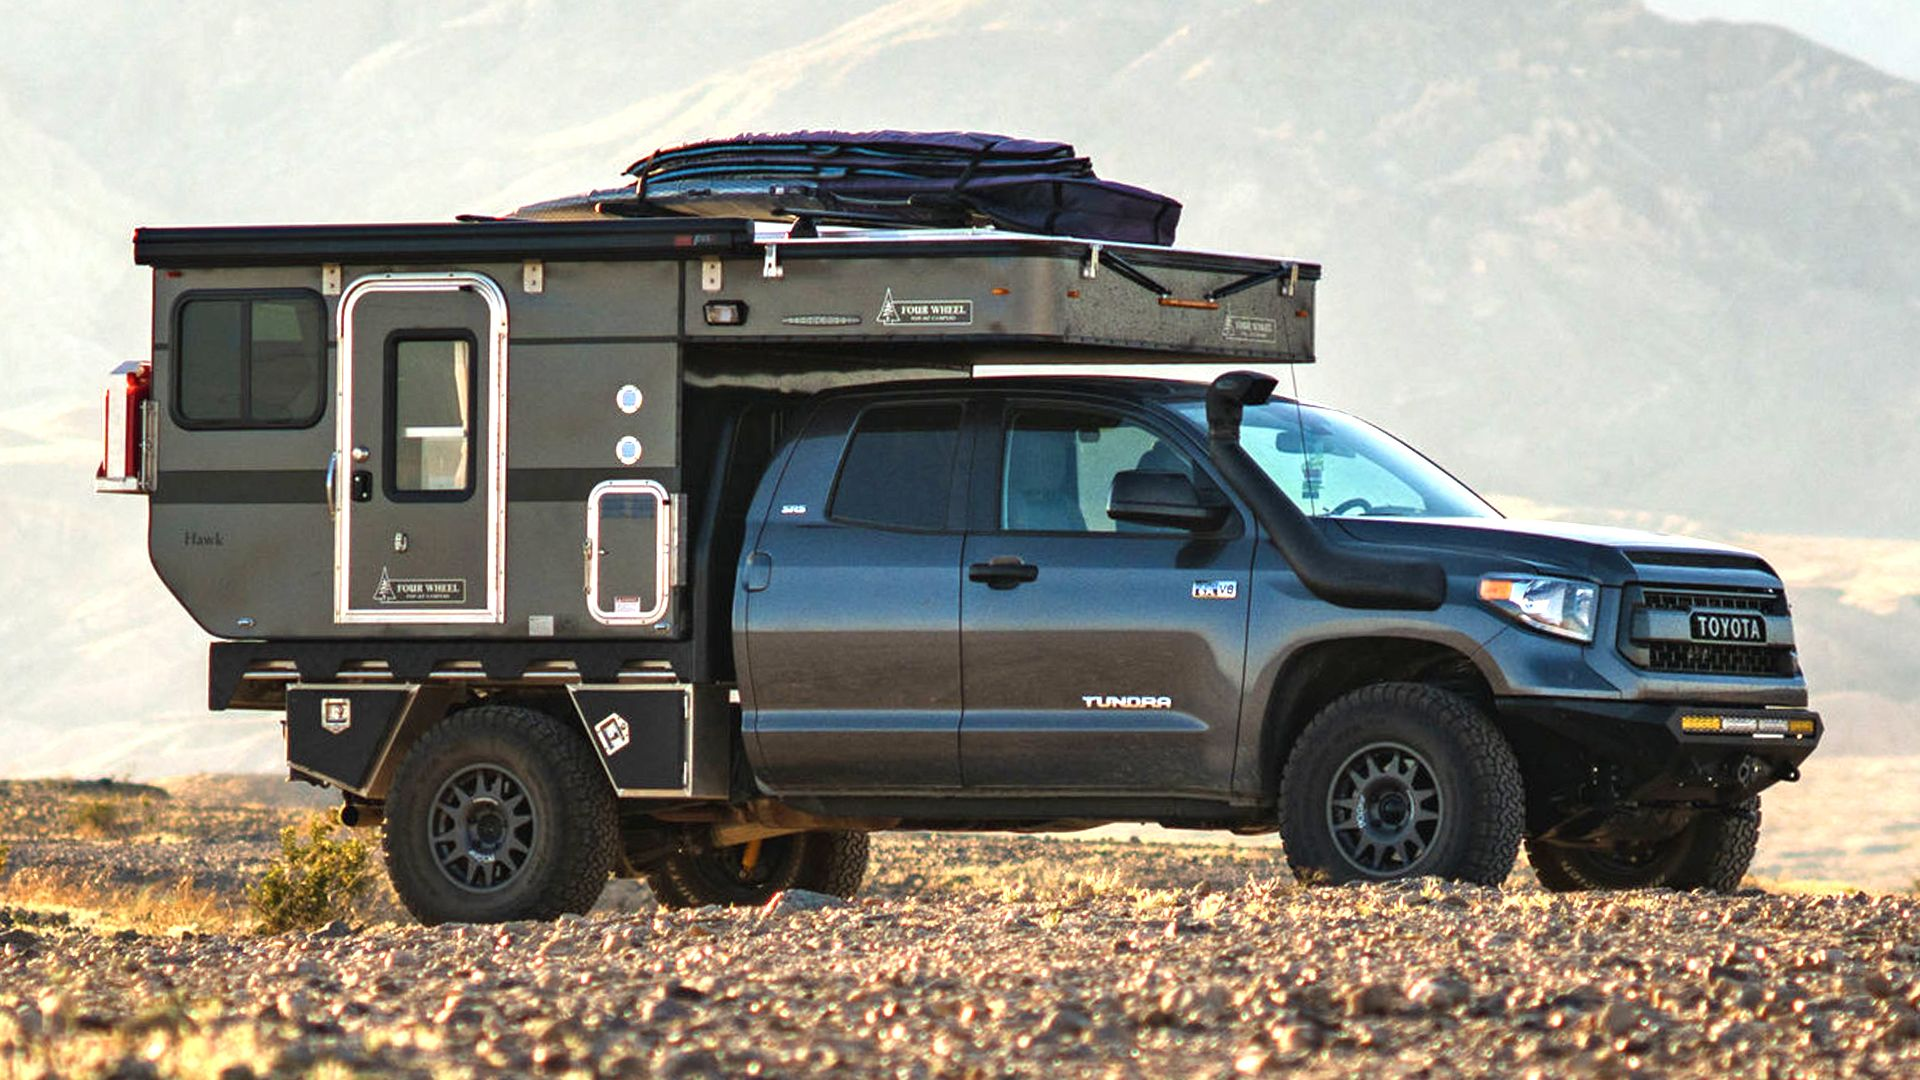 Toyota Tundra Camper With Pop Up Top Is The Ultimate Off